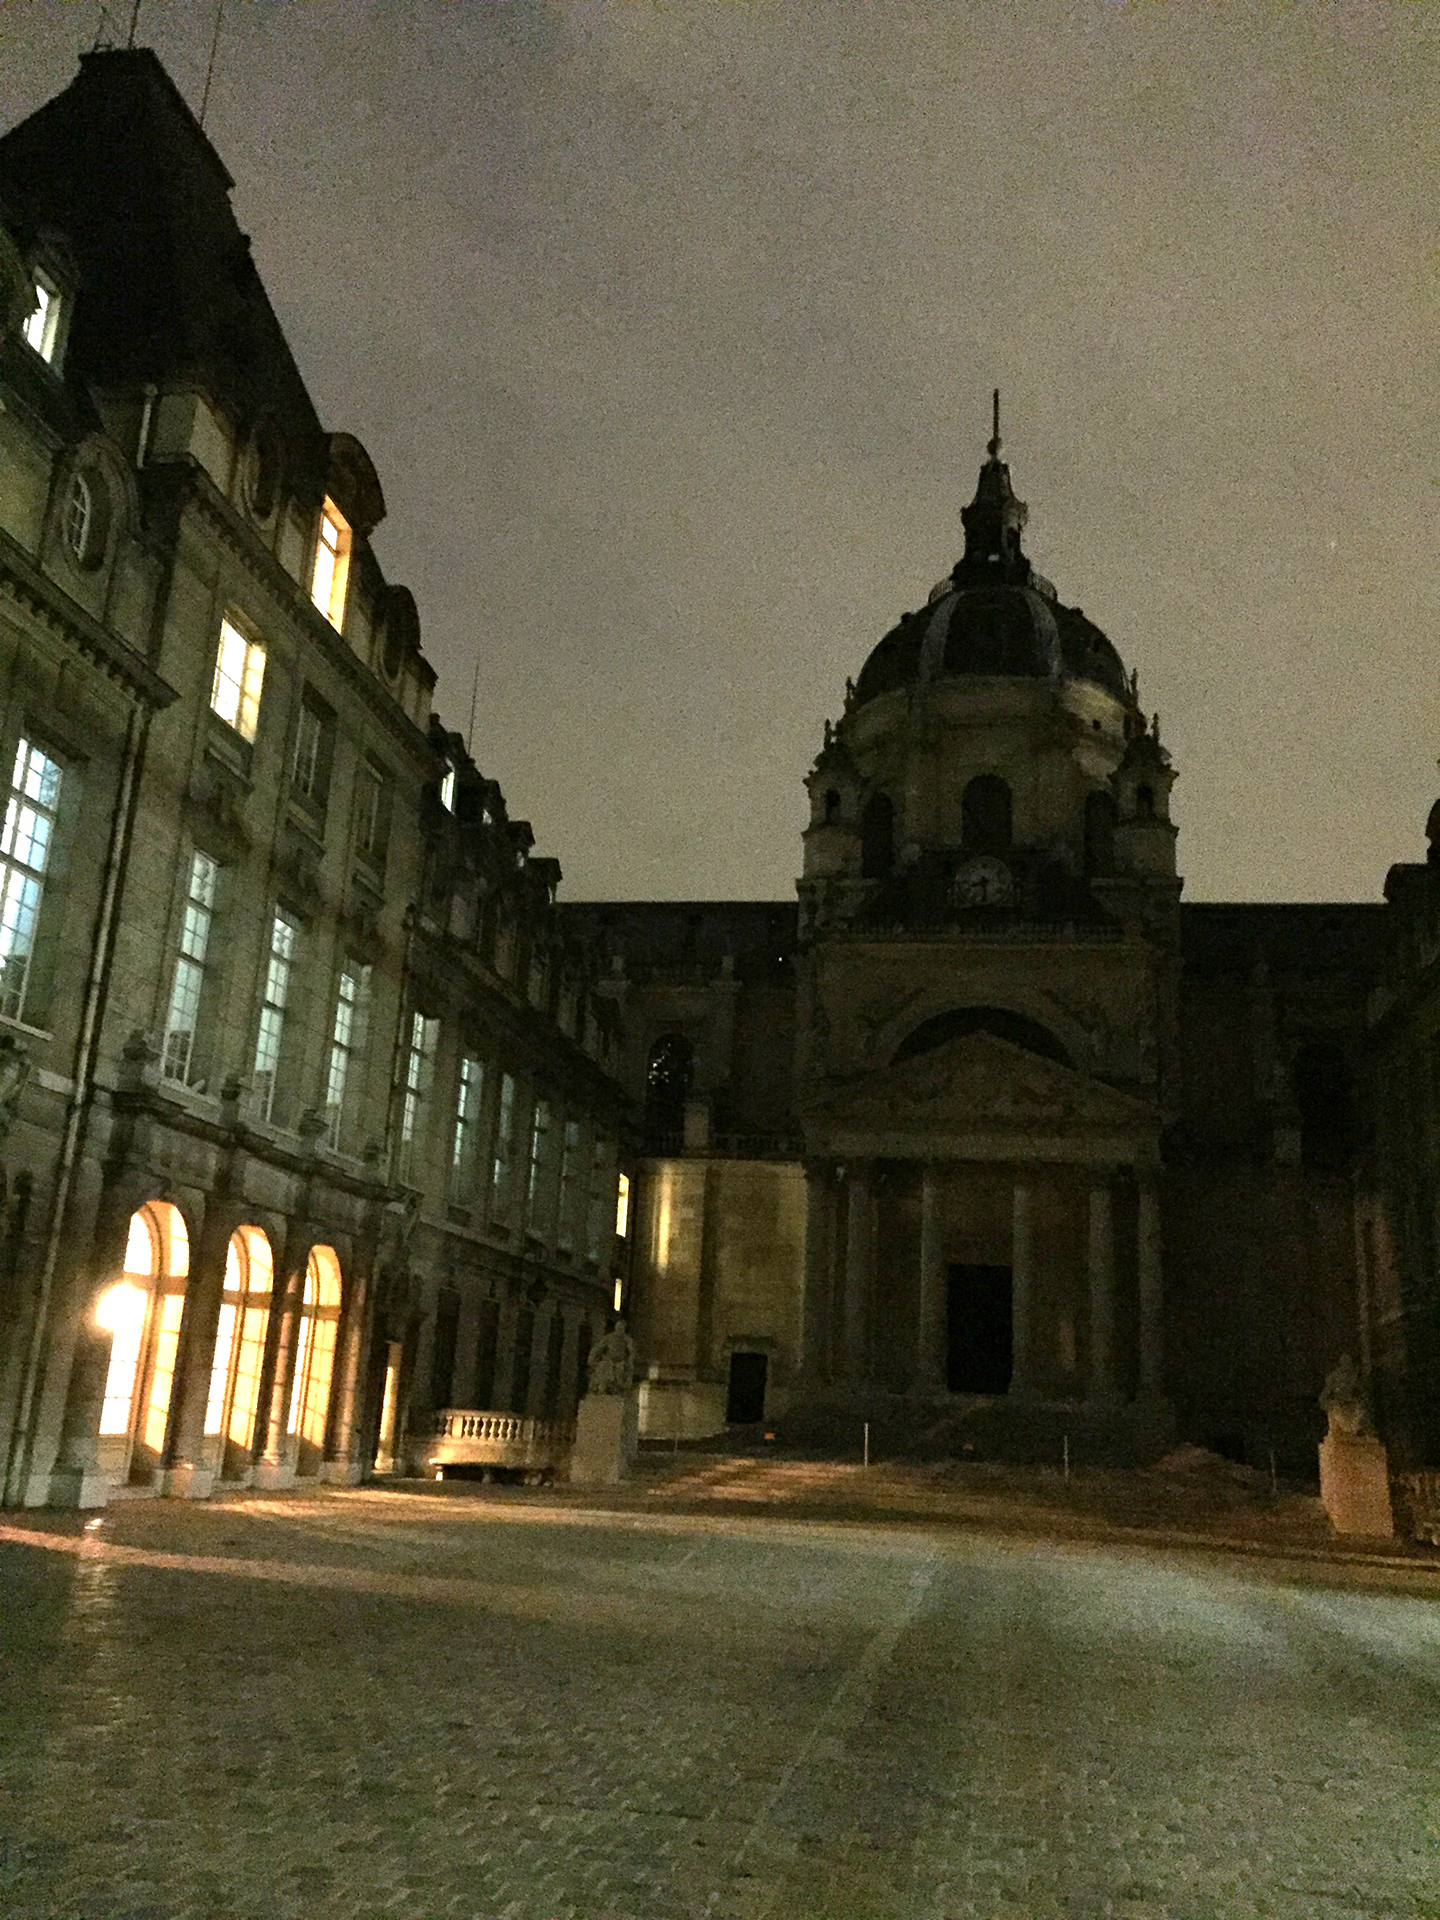 The chapel and cour d'honneur of the Sorbonne